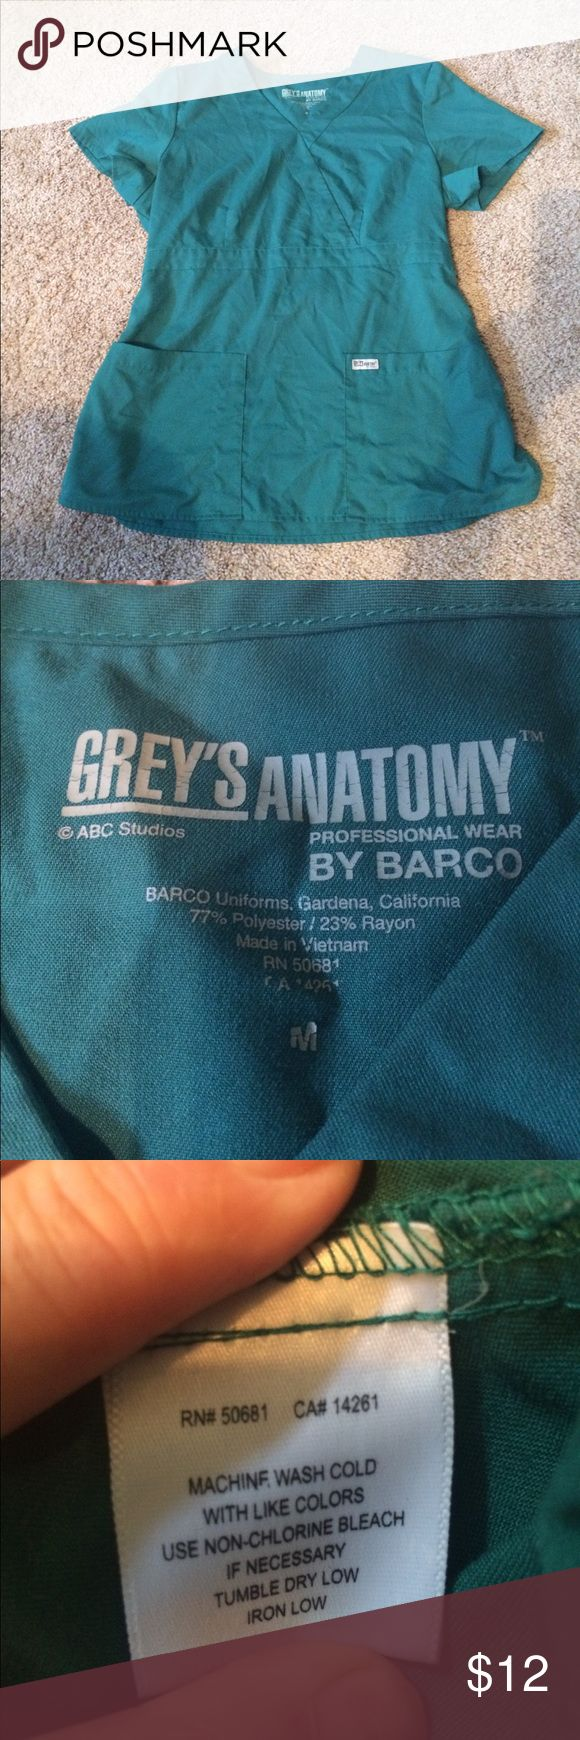 Grey's Anatomy size medium green scrub top Grey's Anatomy size medium green scrub top see all my other scrubs would love to bundle and save you money grey's Anatomy Tops